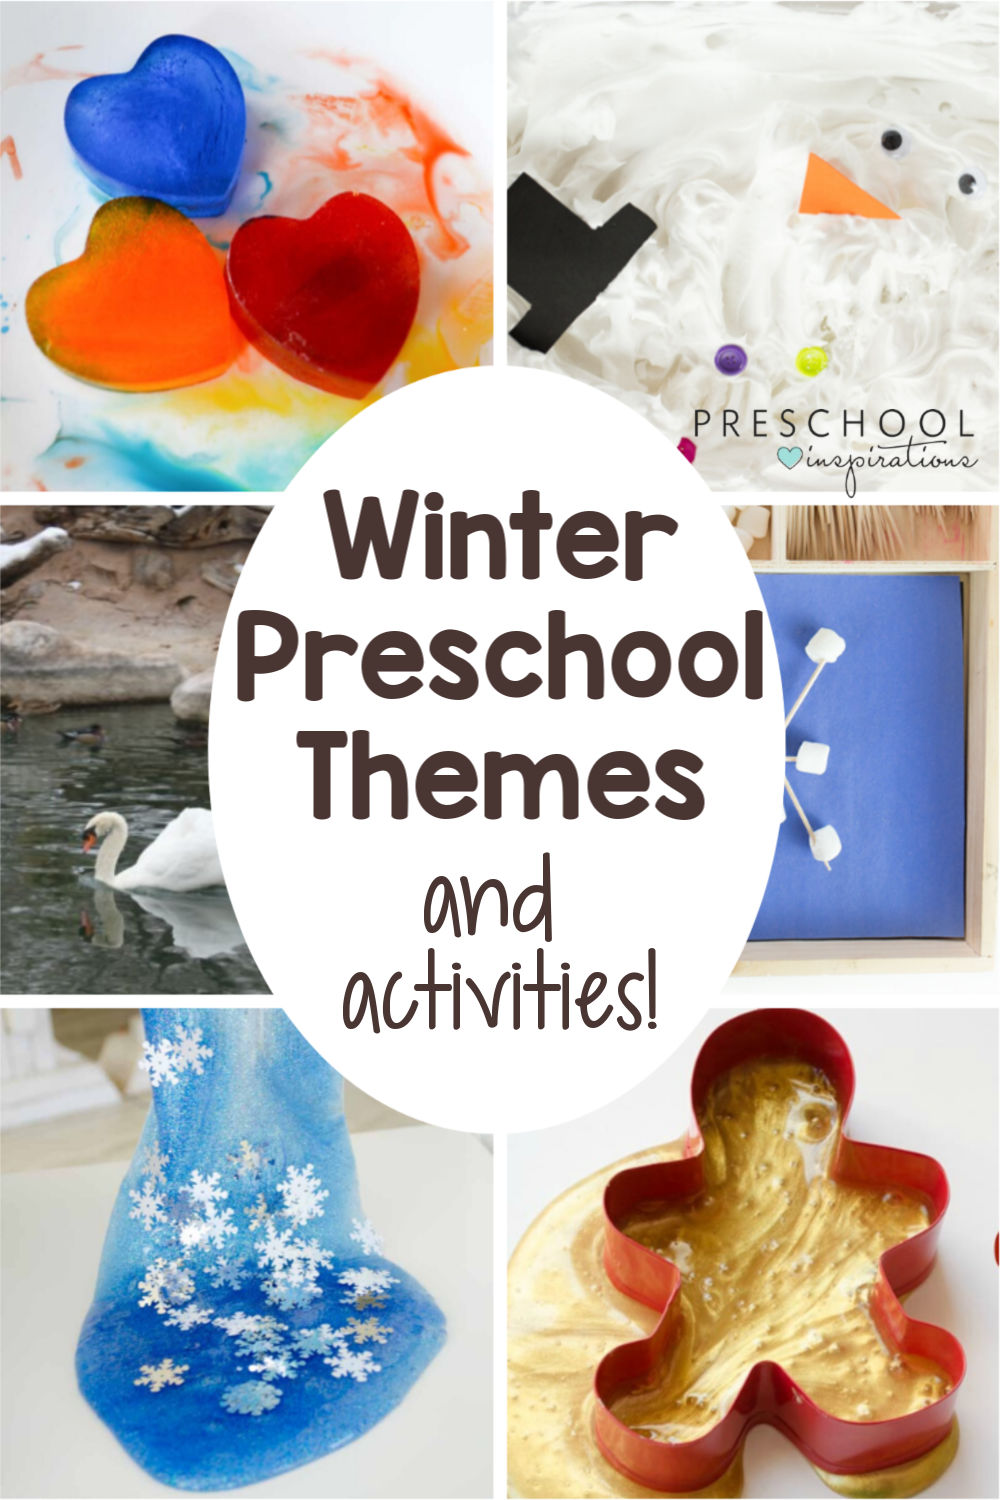 When it comes to teaching preschool in the winter, there are SO many fun themes to choose from! Arctic animals, gingerbread, family, and fun holiday themes like Christmas, New Years, and Valentines Day! Find crafts, activities, and more to go along with each. #preschoolinspirations #winter #preschool #prek #winterthemes #preschoolthemes #kidsactivities